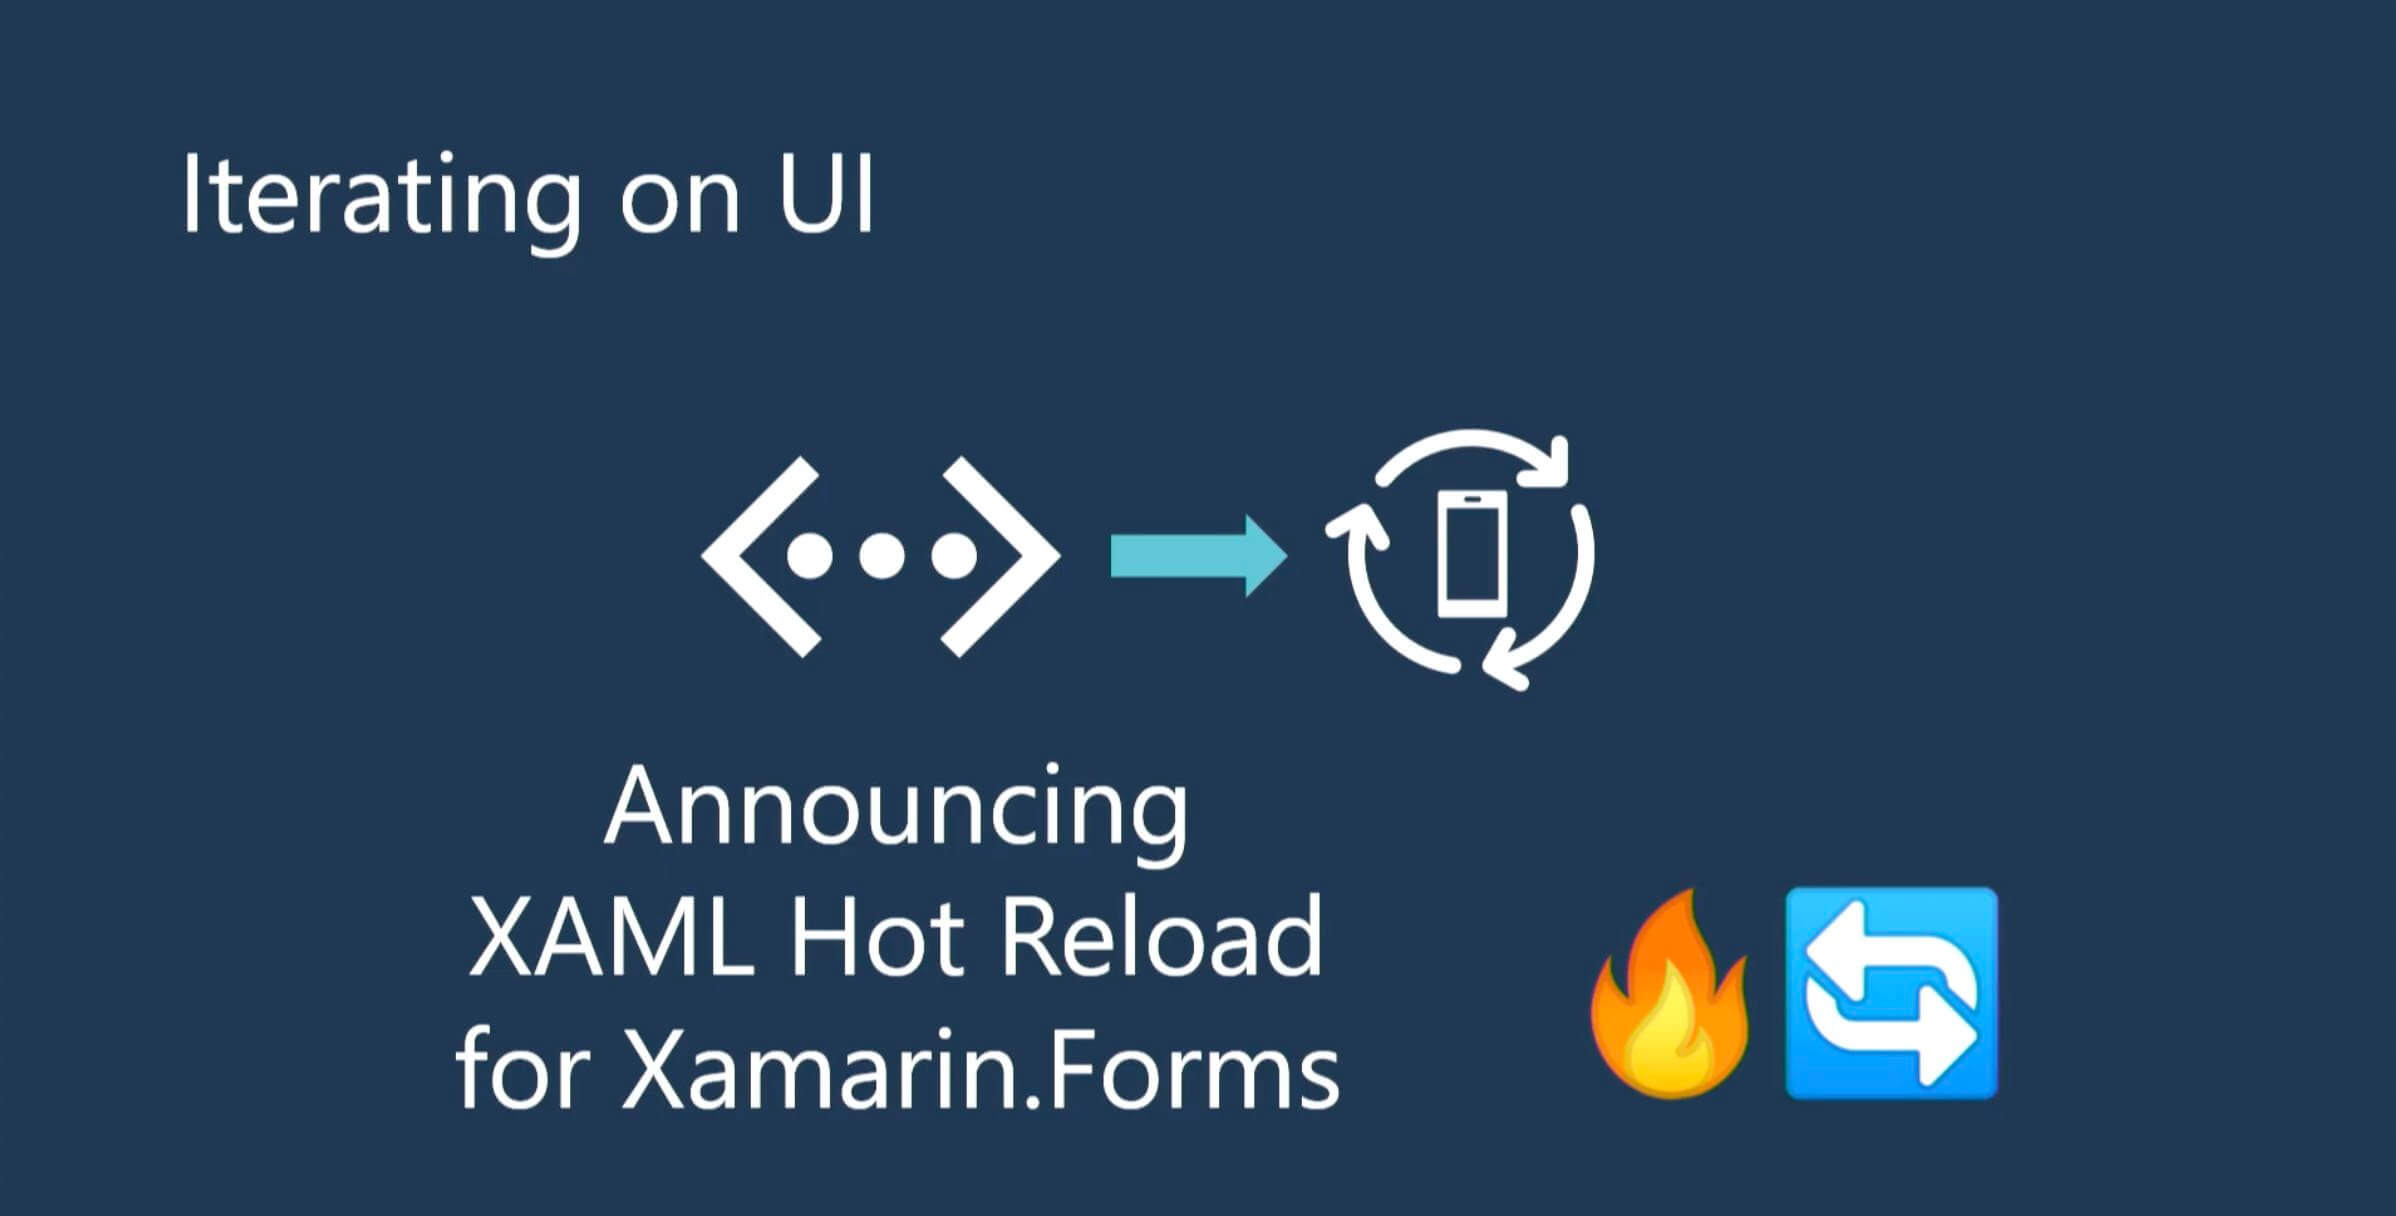 Xamarin.Forms XAML Hot Reload